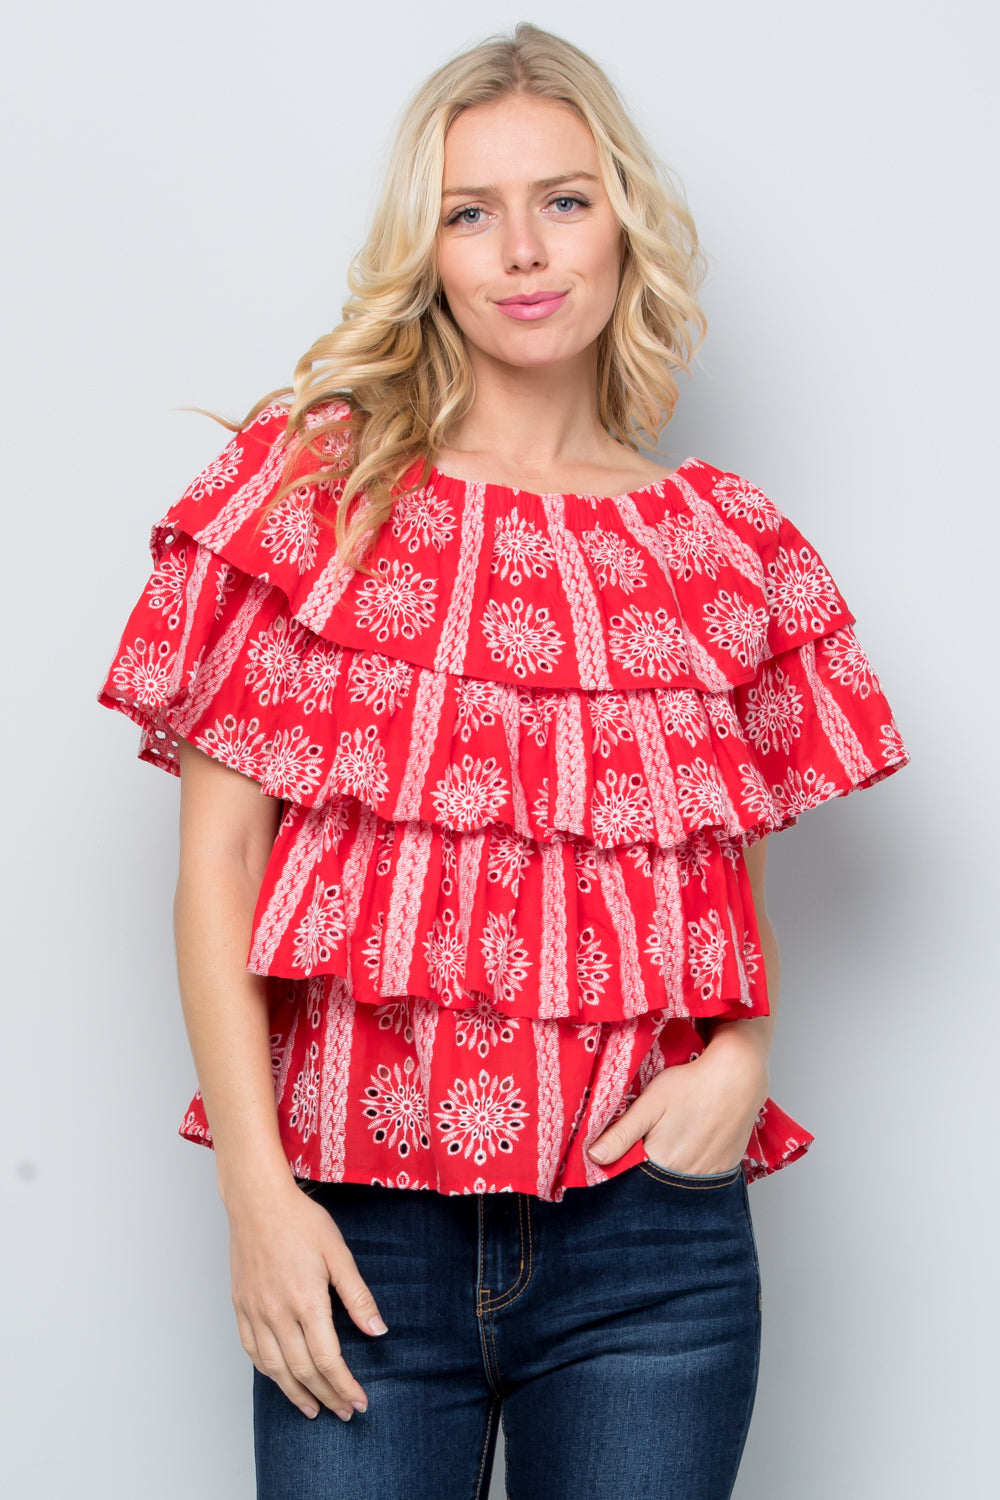 T2786 Embroidery Tier Top